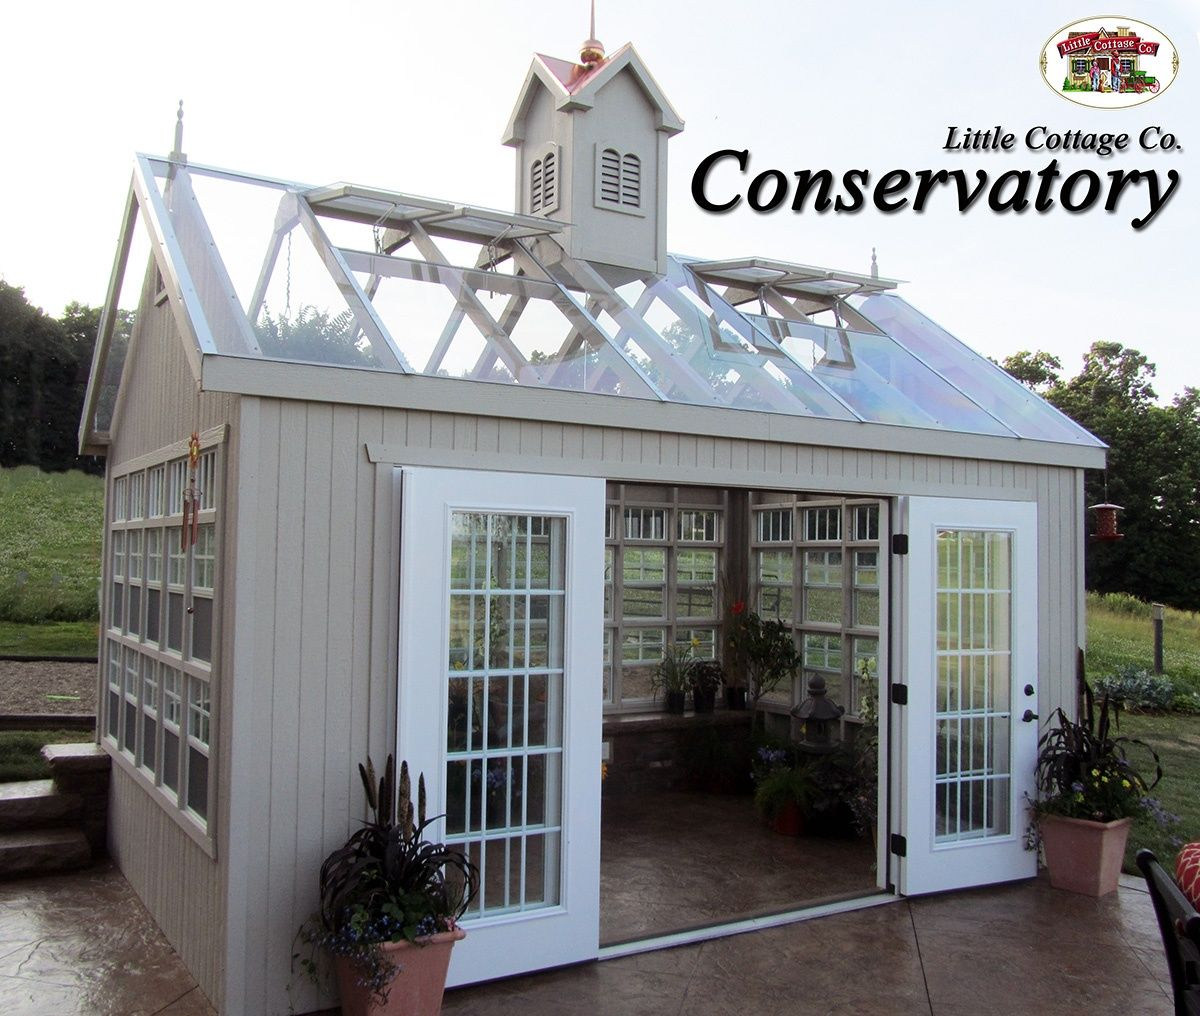 Diy Sheds For Sale: Greenhouse SHE Shed - 22 Awesome DIY Kit Ideas